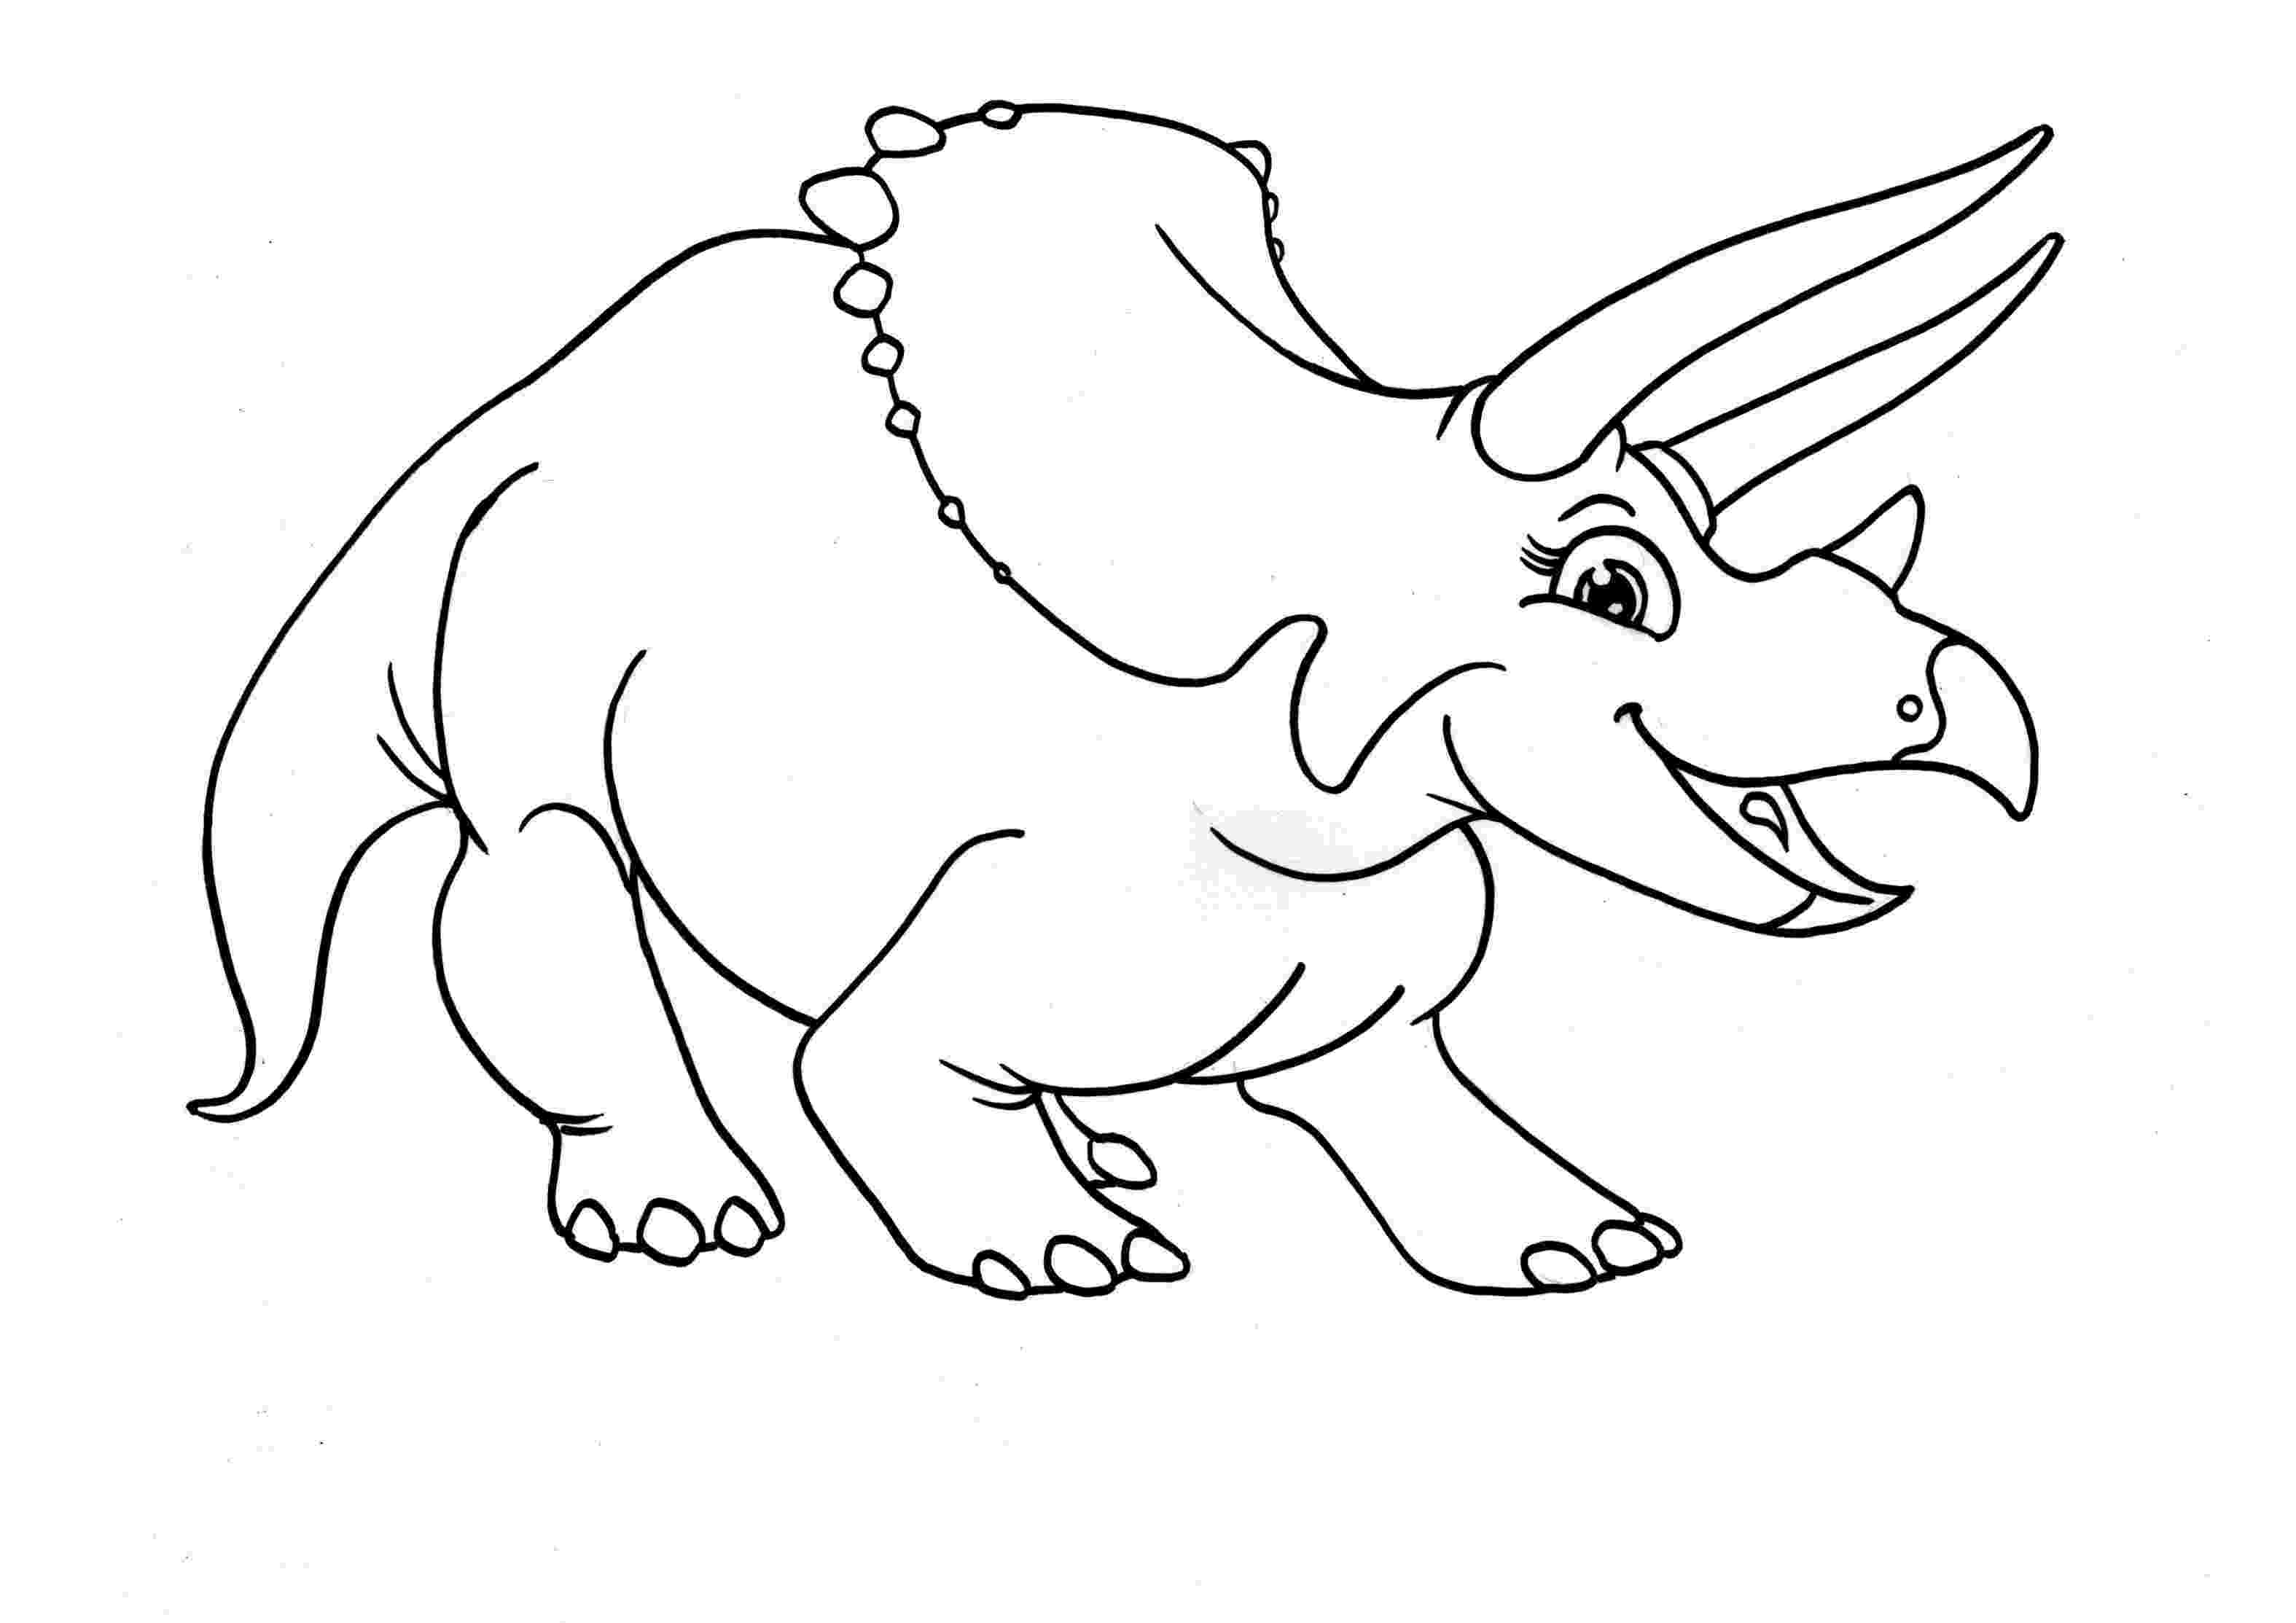 printable dinosaur pictures to color free printable dinosaur coloring pages for kids dinosaur to printable pictures color